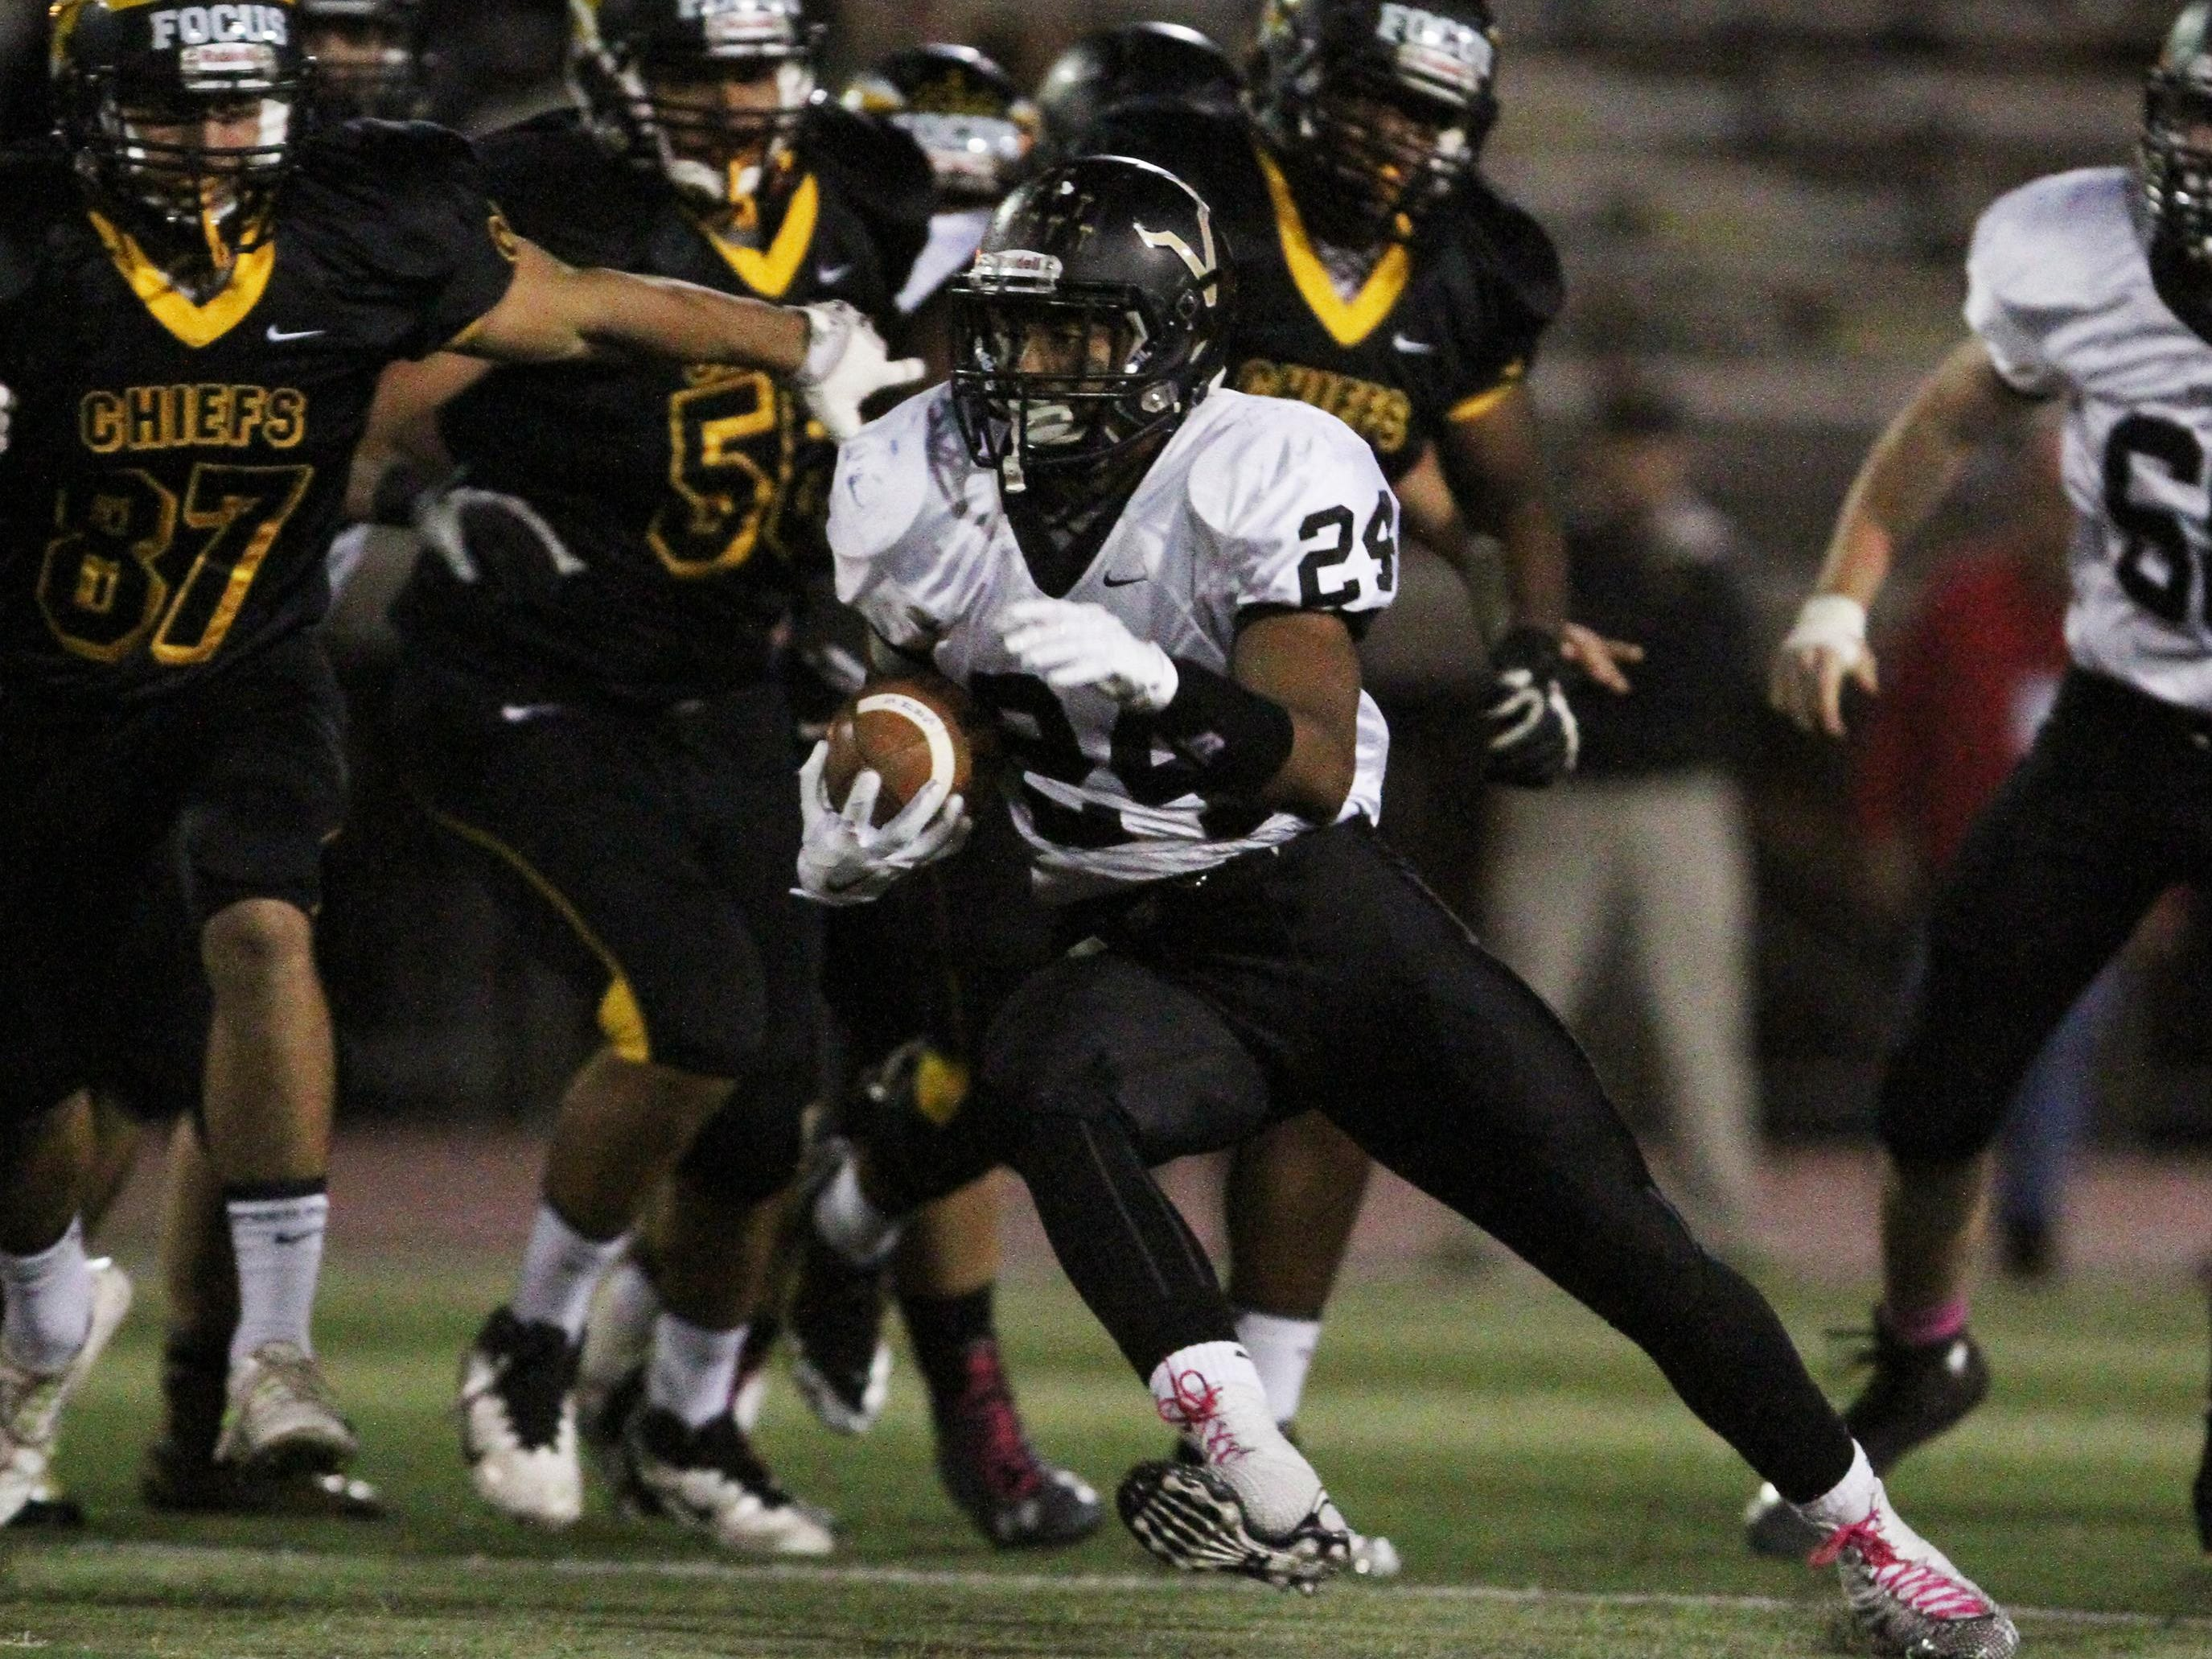 Action photos of No. 2 South Brunswick at No. 1 Piscataway in huge GMC football game at Piscataway High School.South Brunswick's # 24- Phil Campbell looks for running room during the 1st half of play.On Friday October 31,2014Photo: Mark R. Sullivan/Staff Photographer